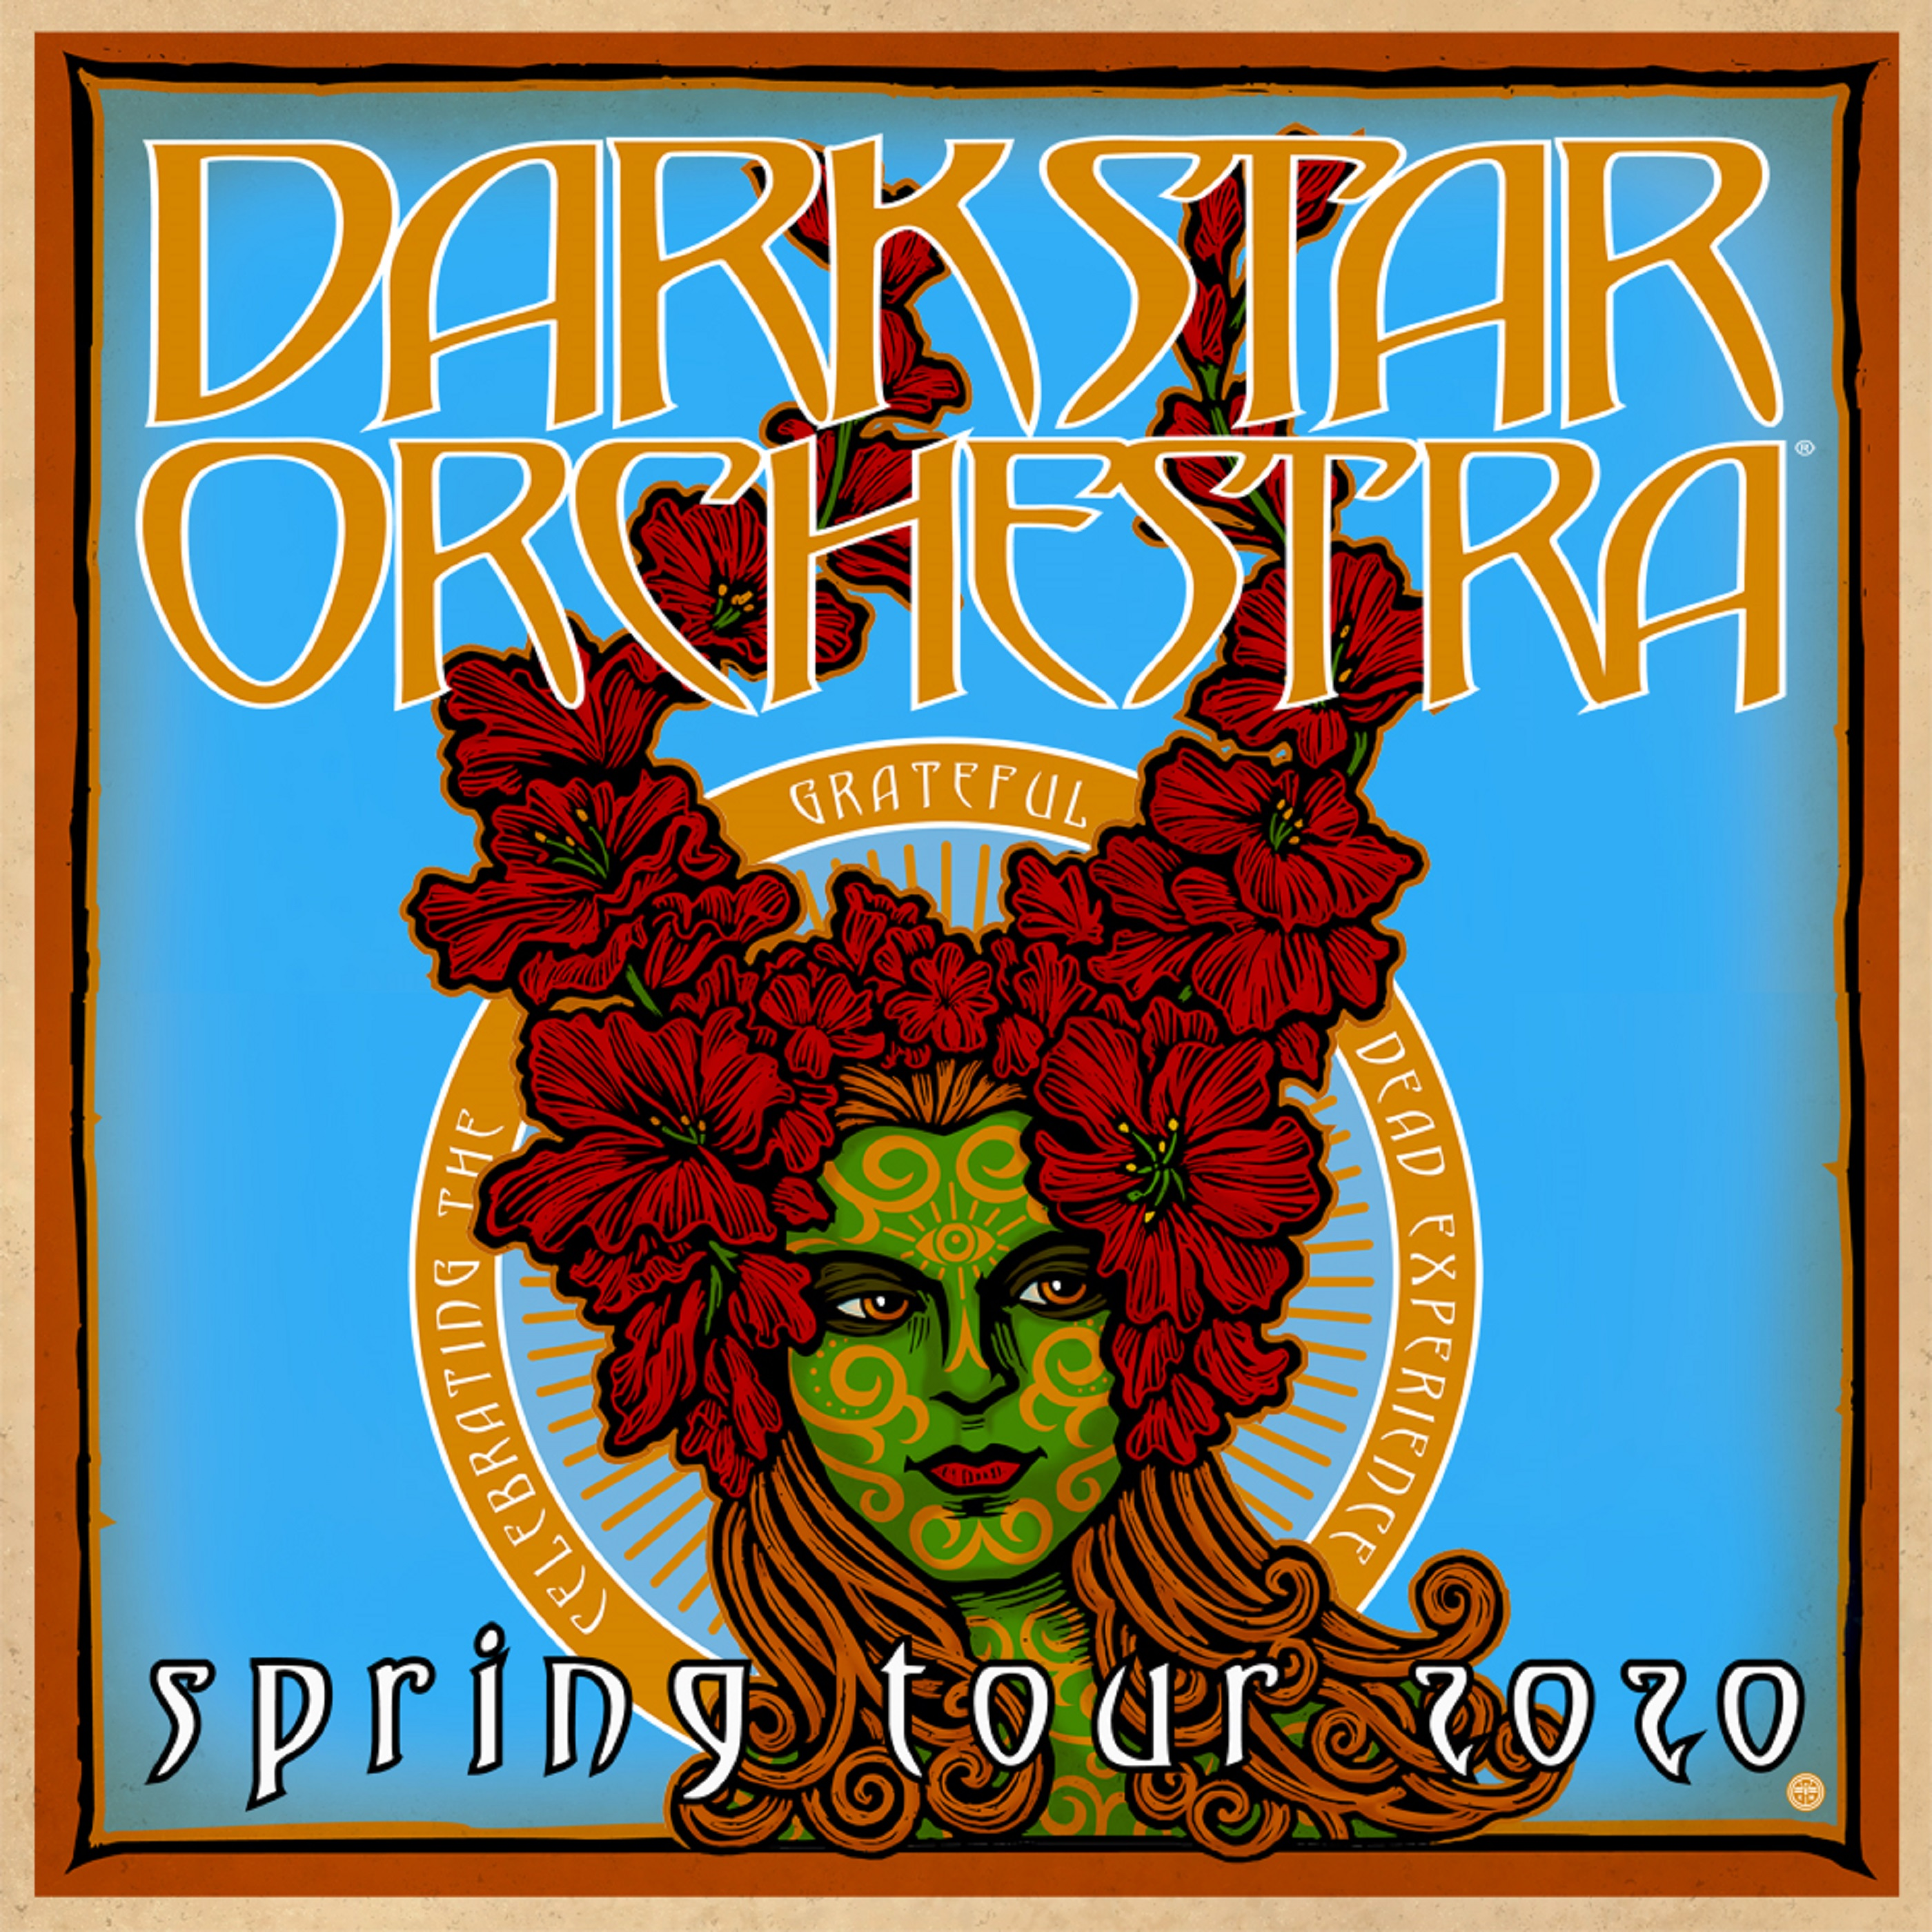 Dark Star Orchestra Announce Spring Tour 2020